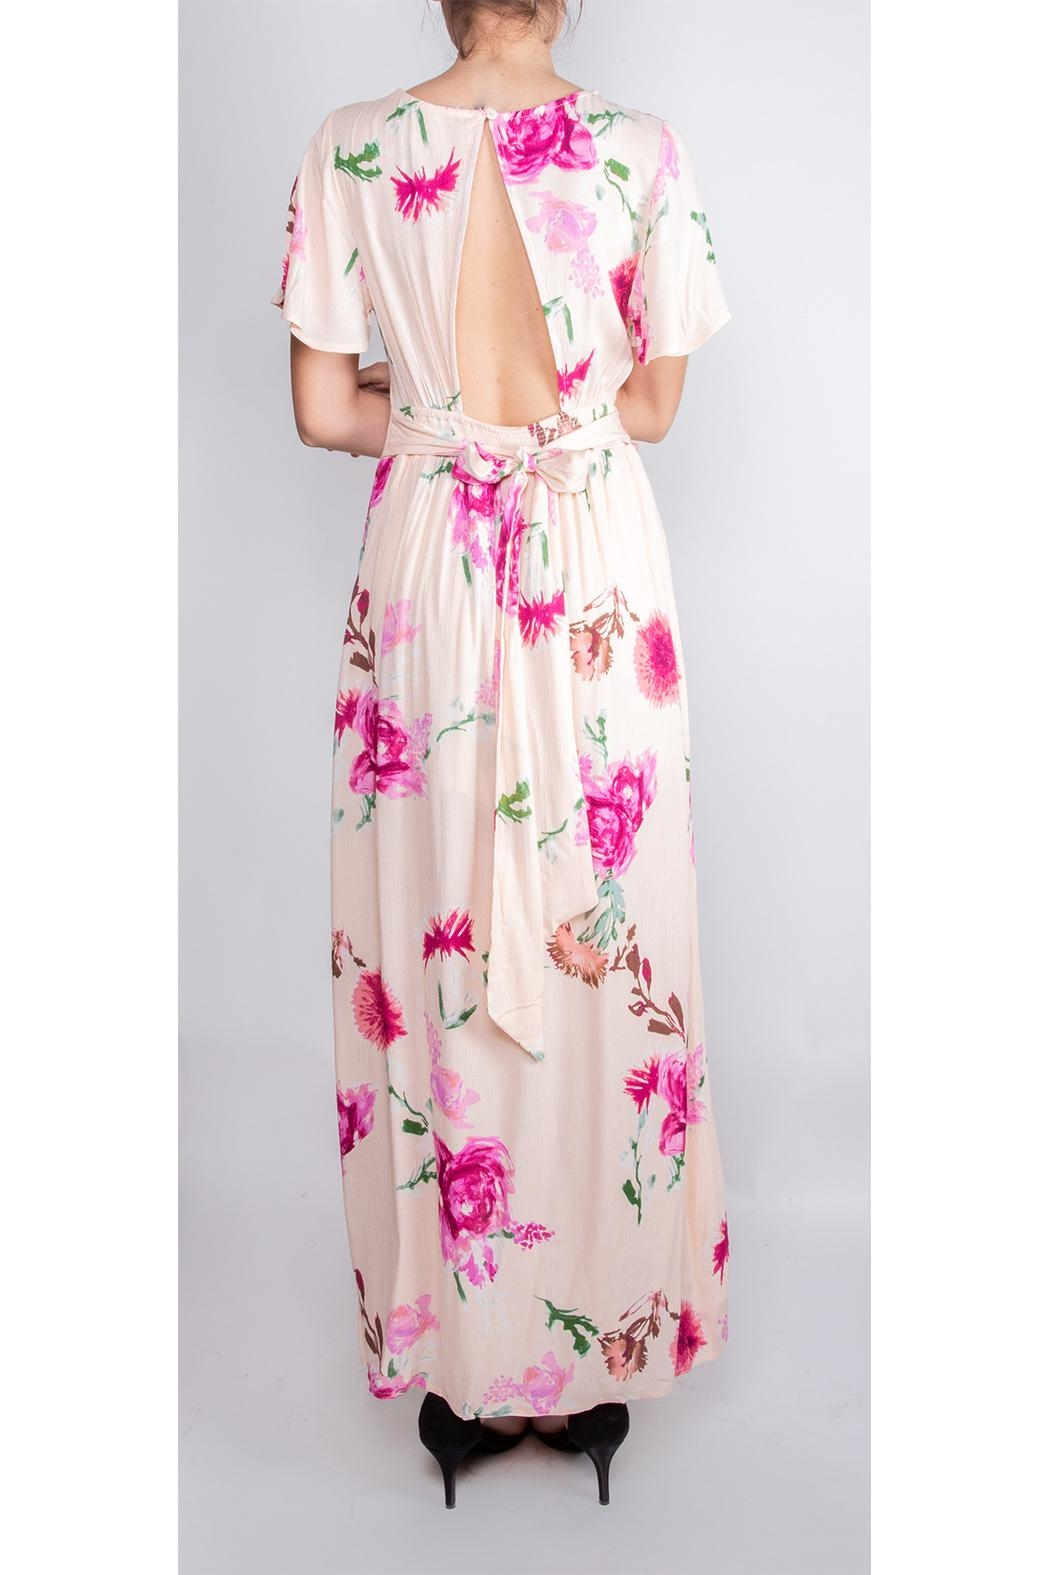 Illa Illa Dream Floral Romper-Dress - Back Cropped Image